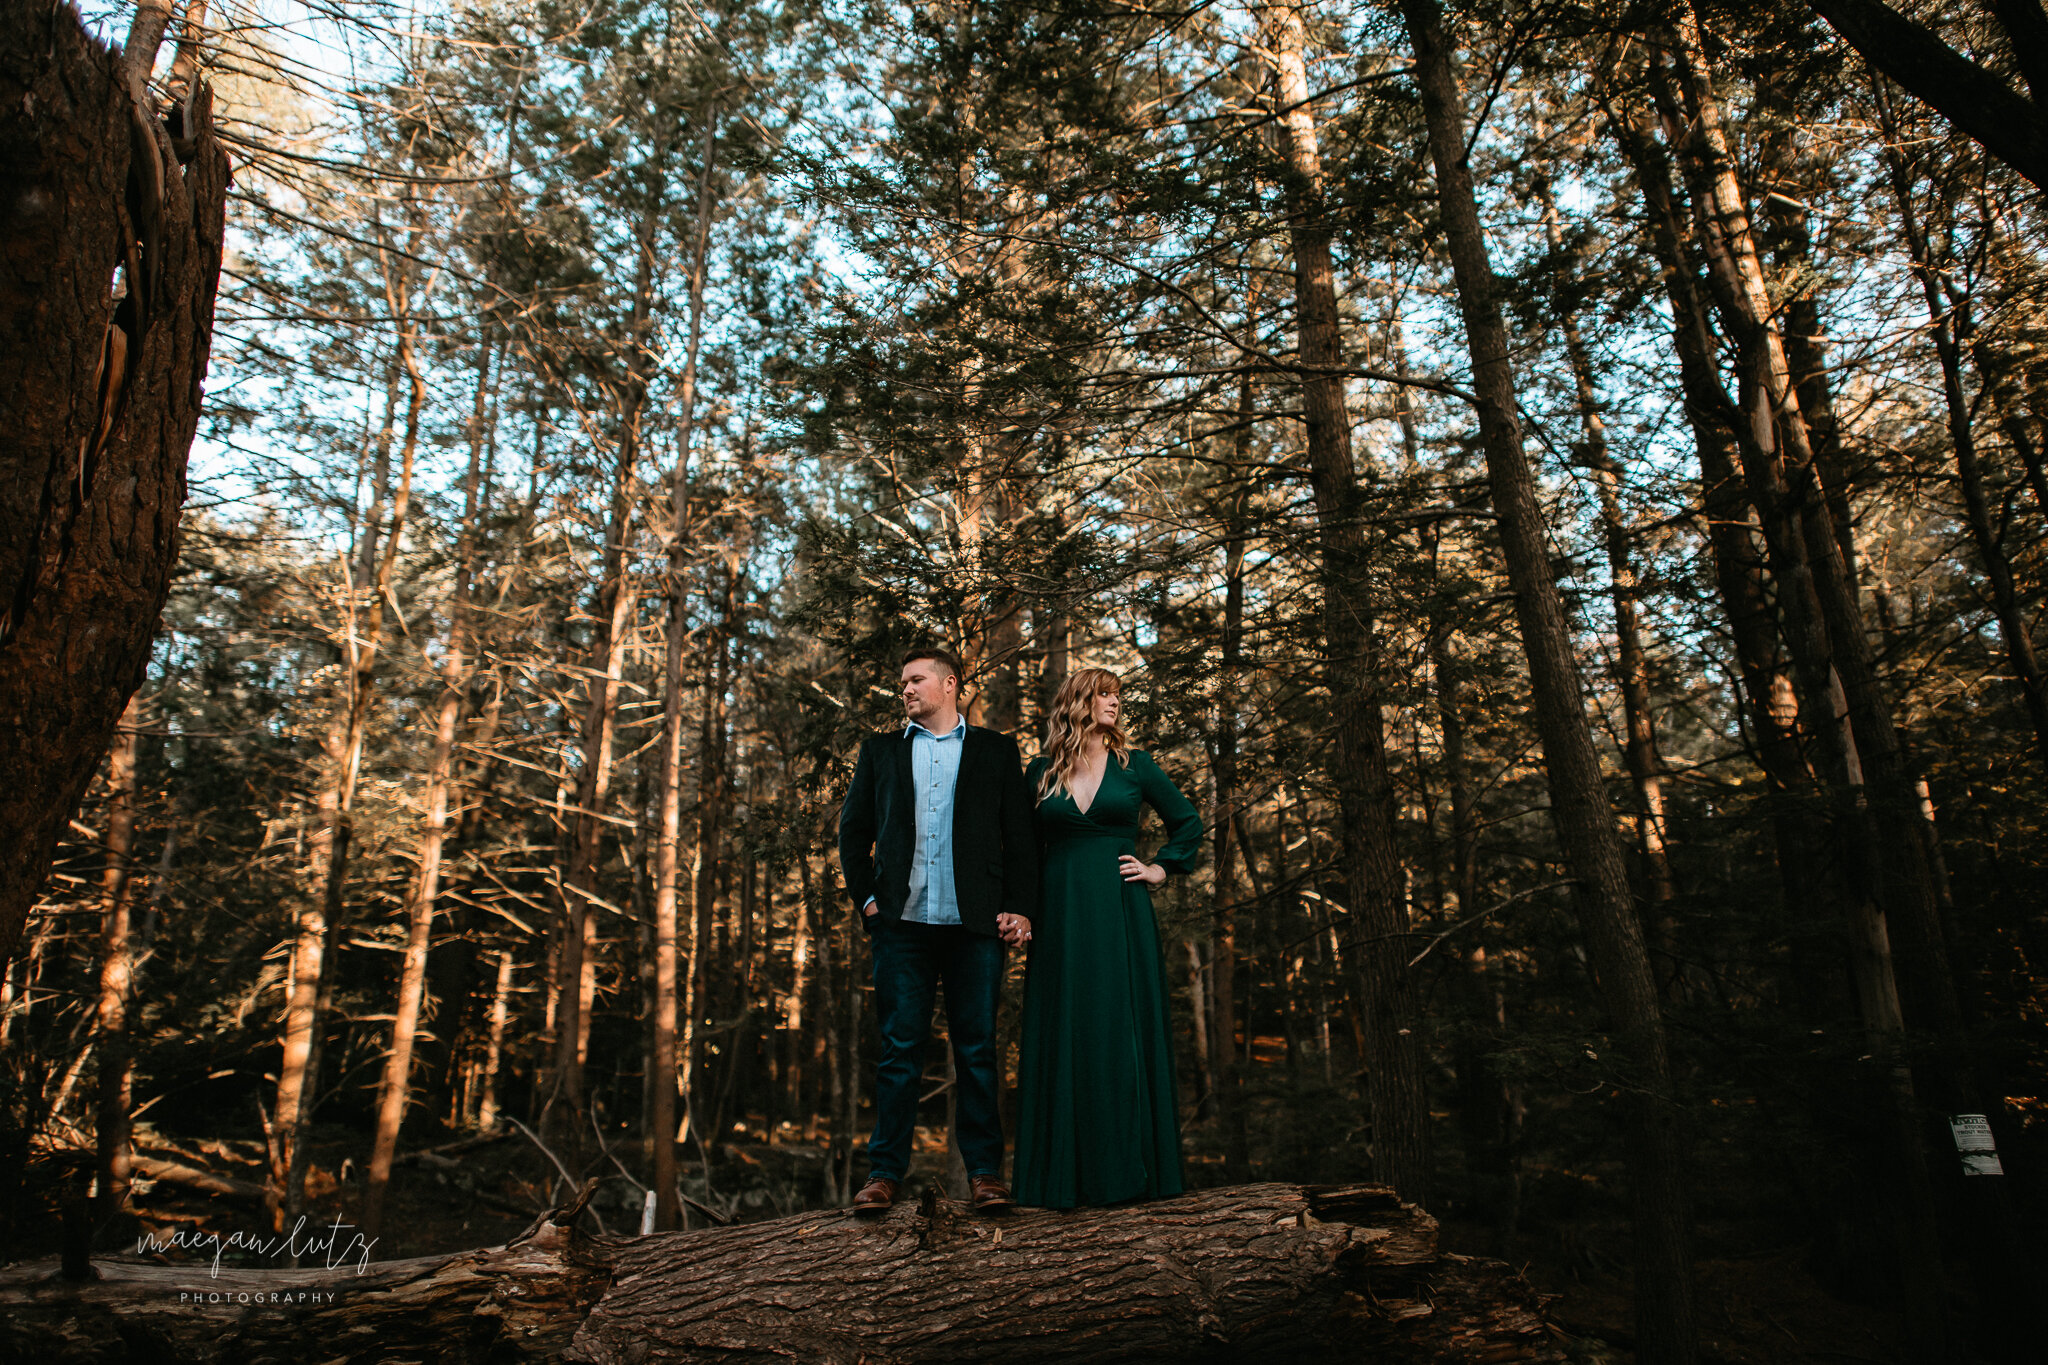 Courtney & Tim - Engagement Session at Boulder Field, Hickory Run State Park